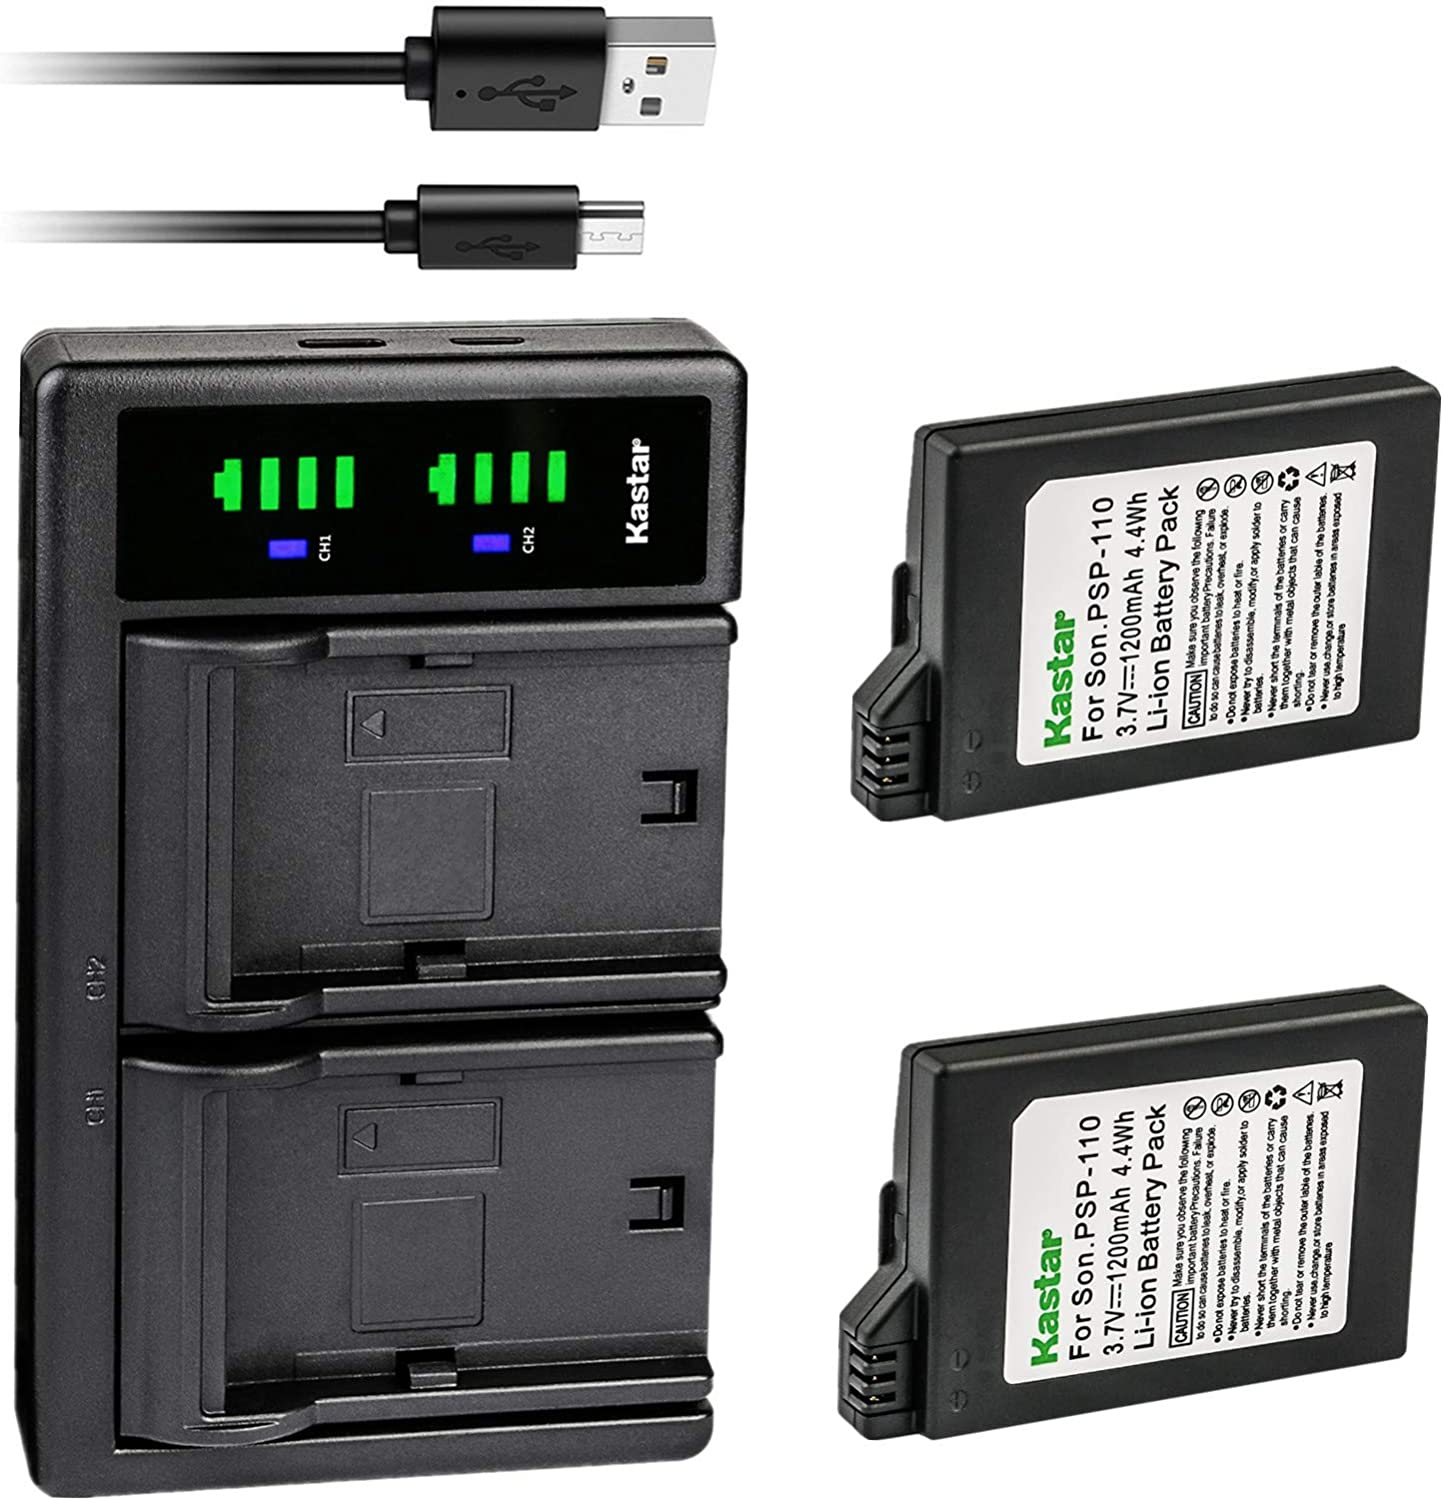 2021 Kastar 2-Pack PSP 110 Battery and Replacement USB LTD2 Charger Raleigh Mall f